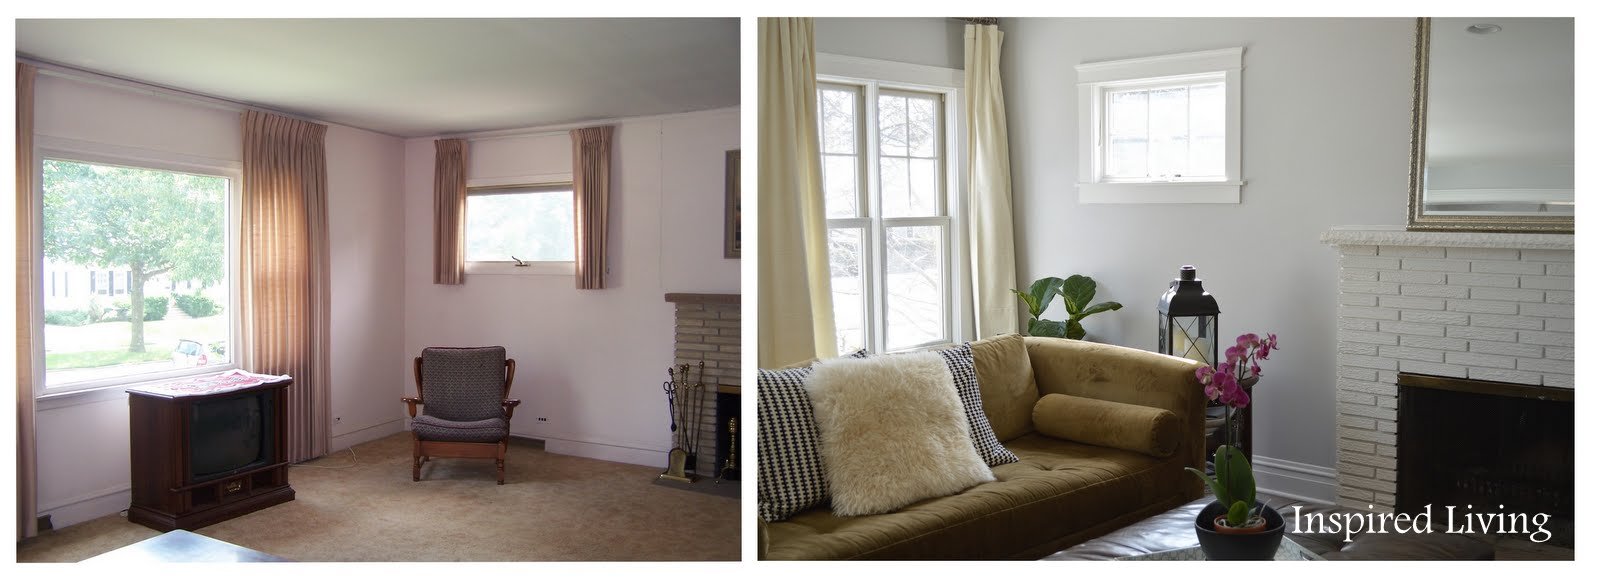 Inspired living living room before and afters - Before and after the spectacular change of a s living room ...